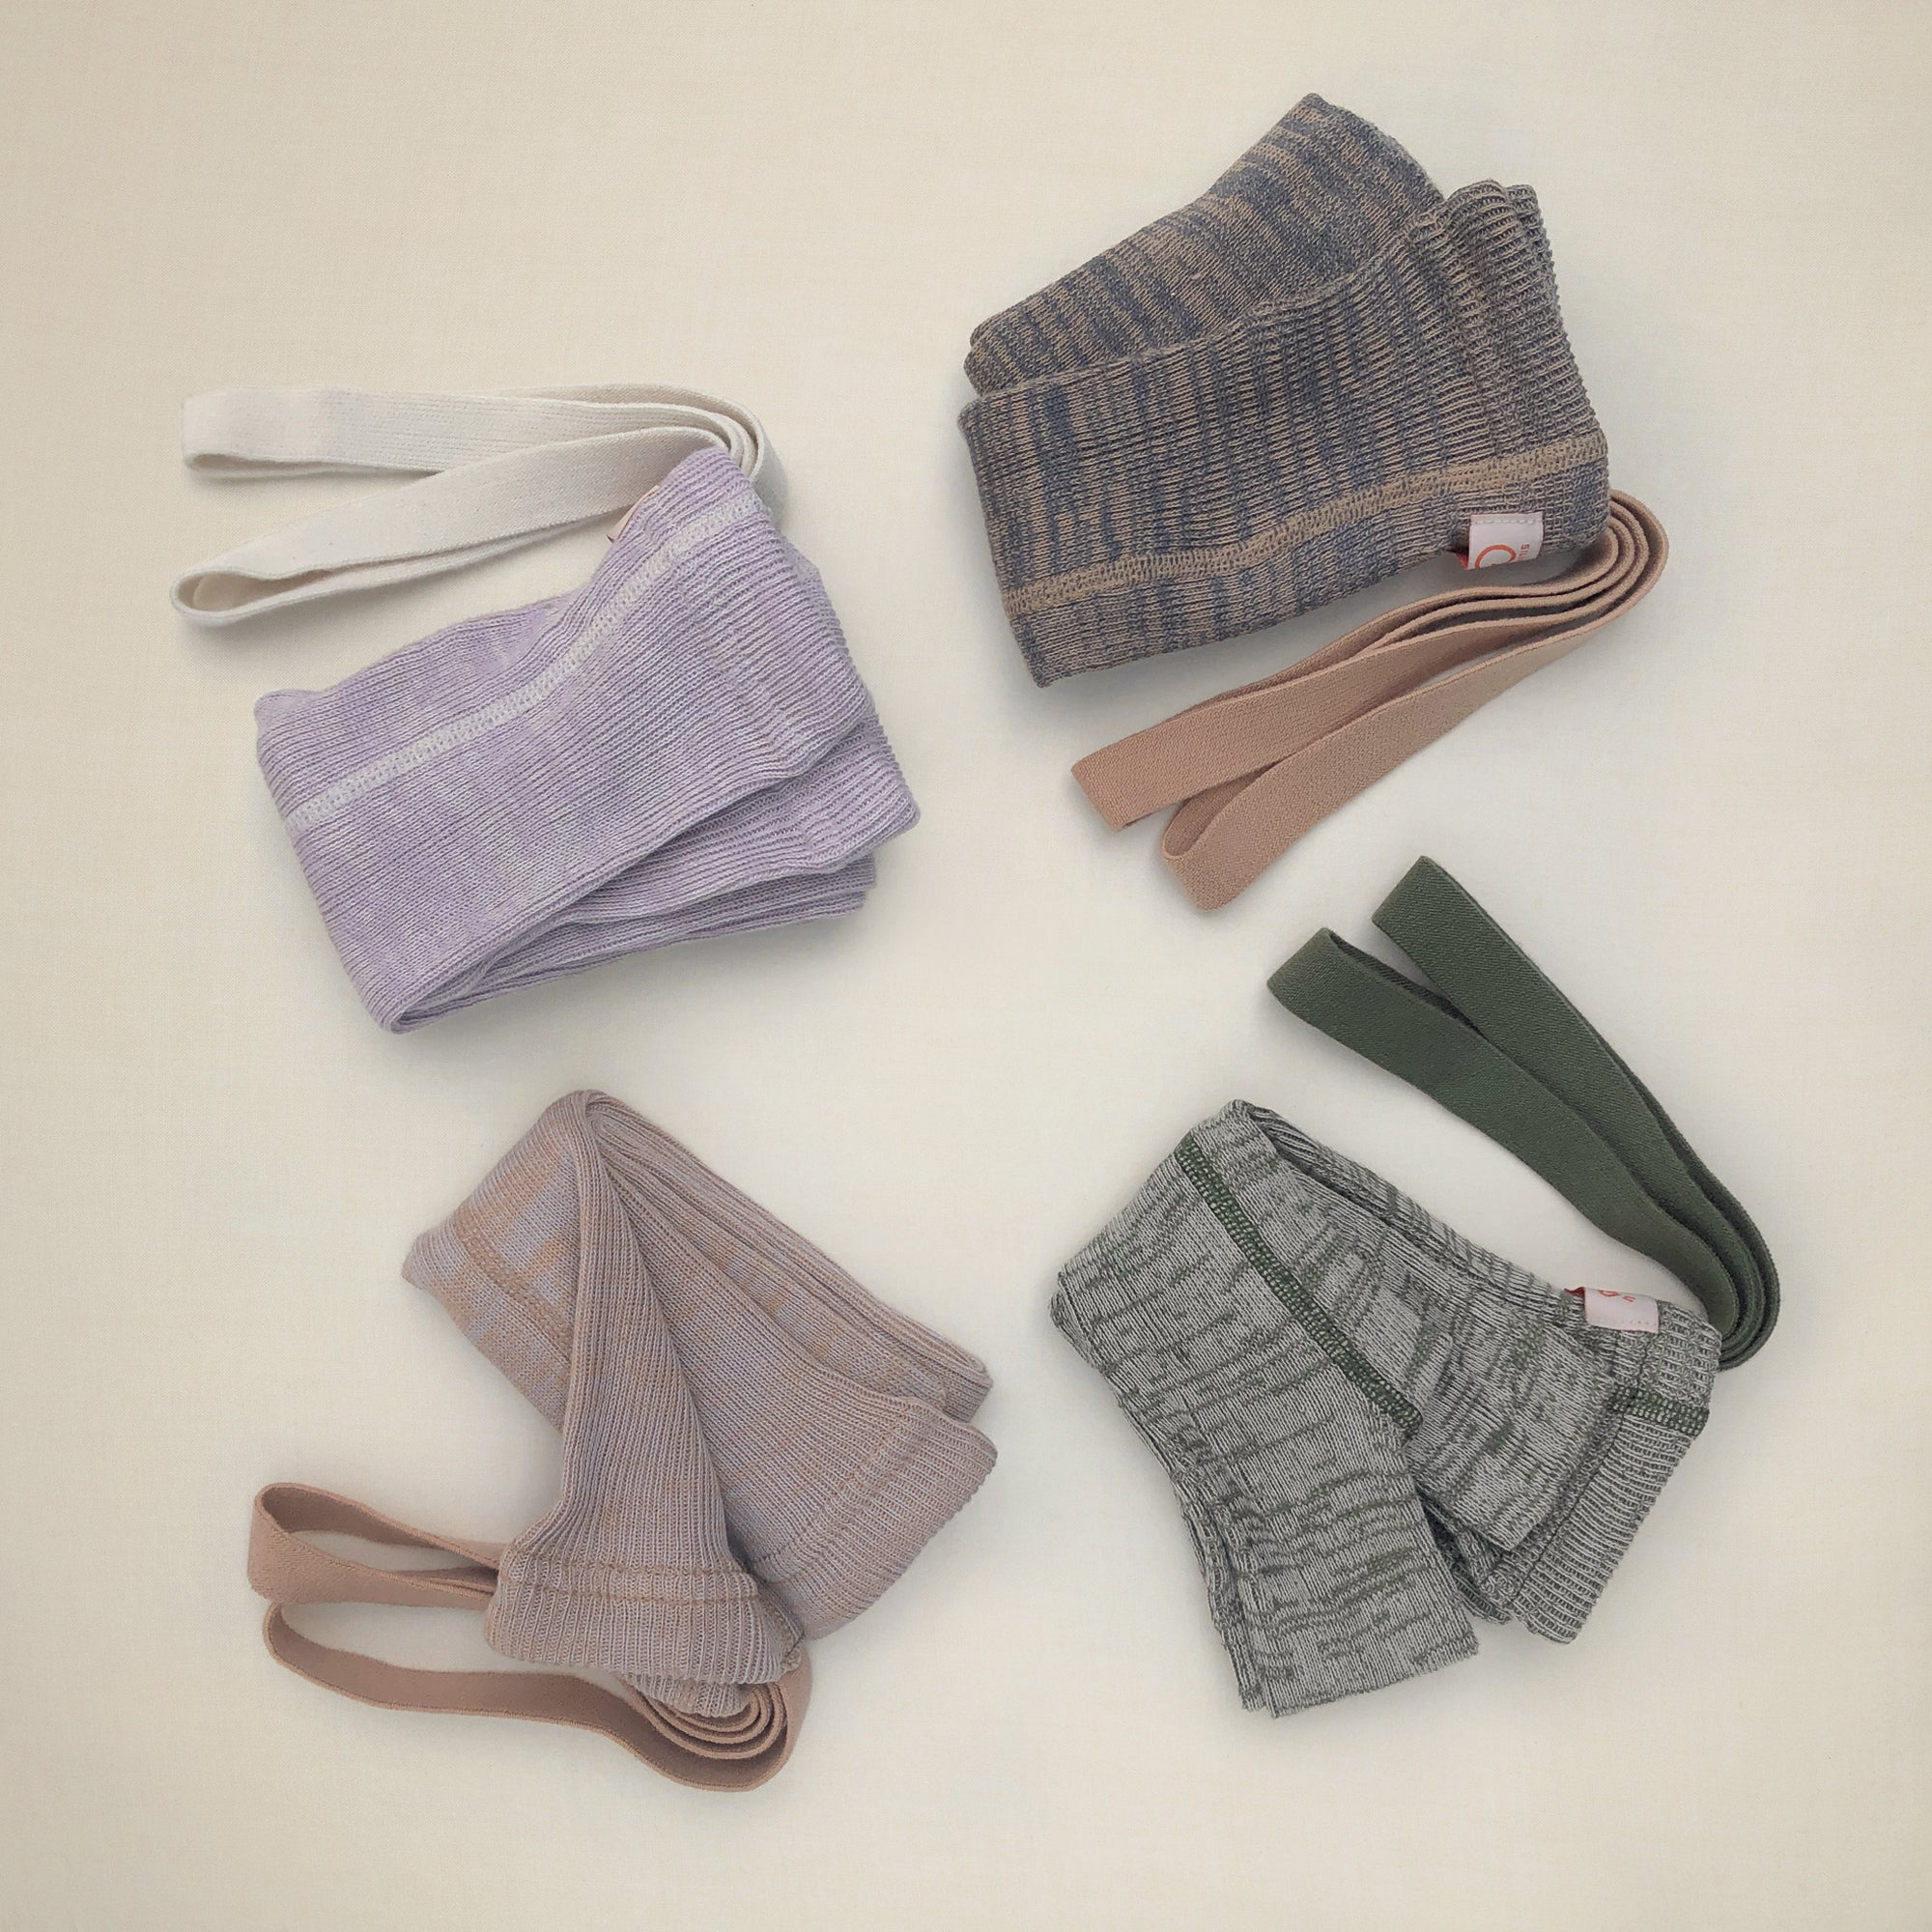 Silly Silas RETRO-BRACE MARL LEGGINGS - Creamy Lilac/  Creamy Olive/ Charcoal Fawn/ Rose Marl